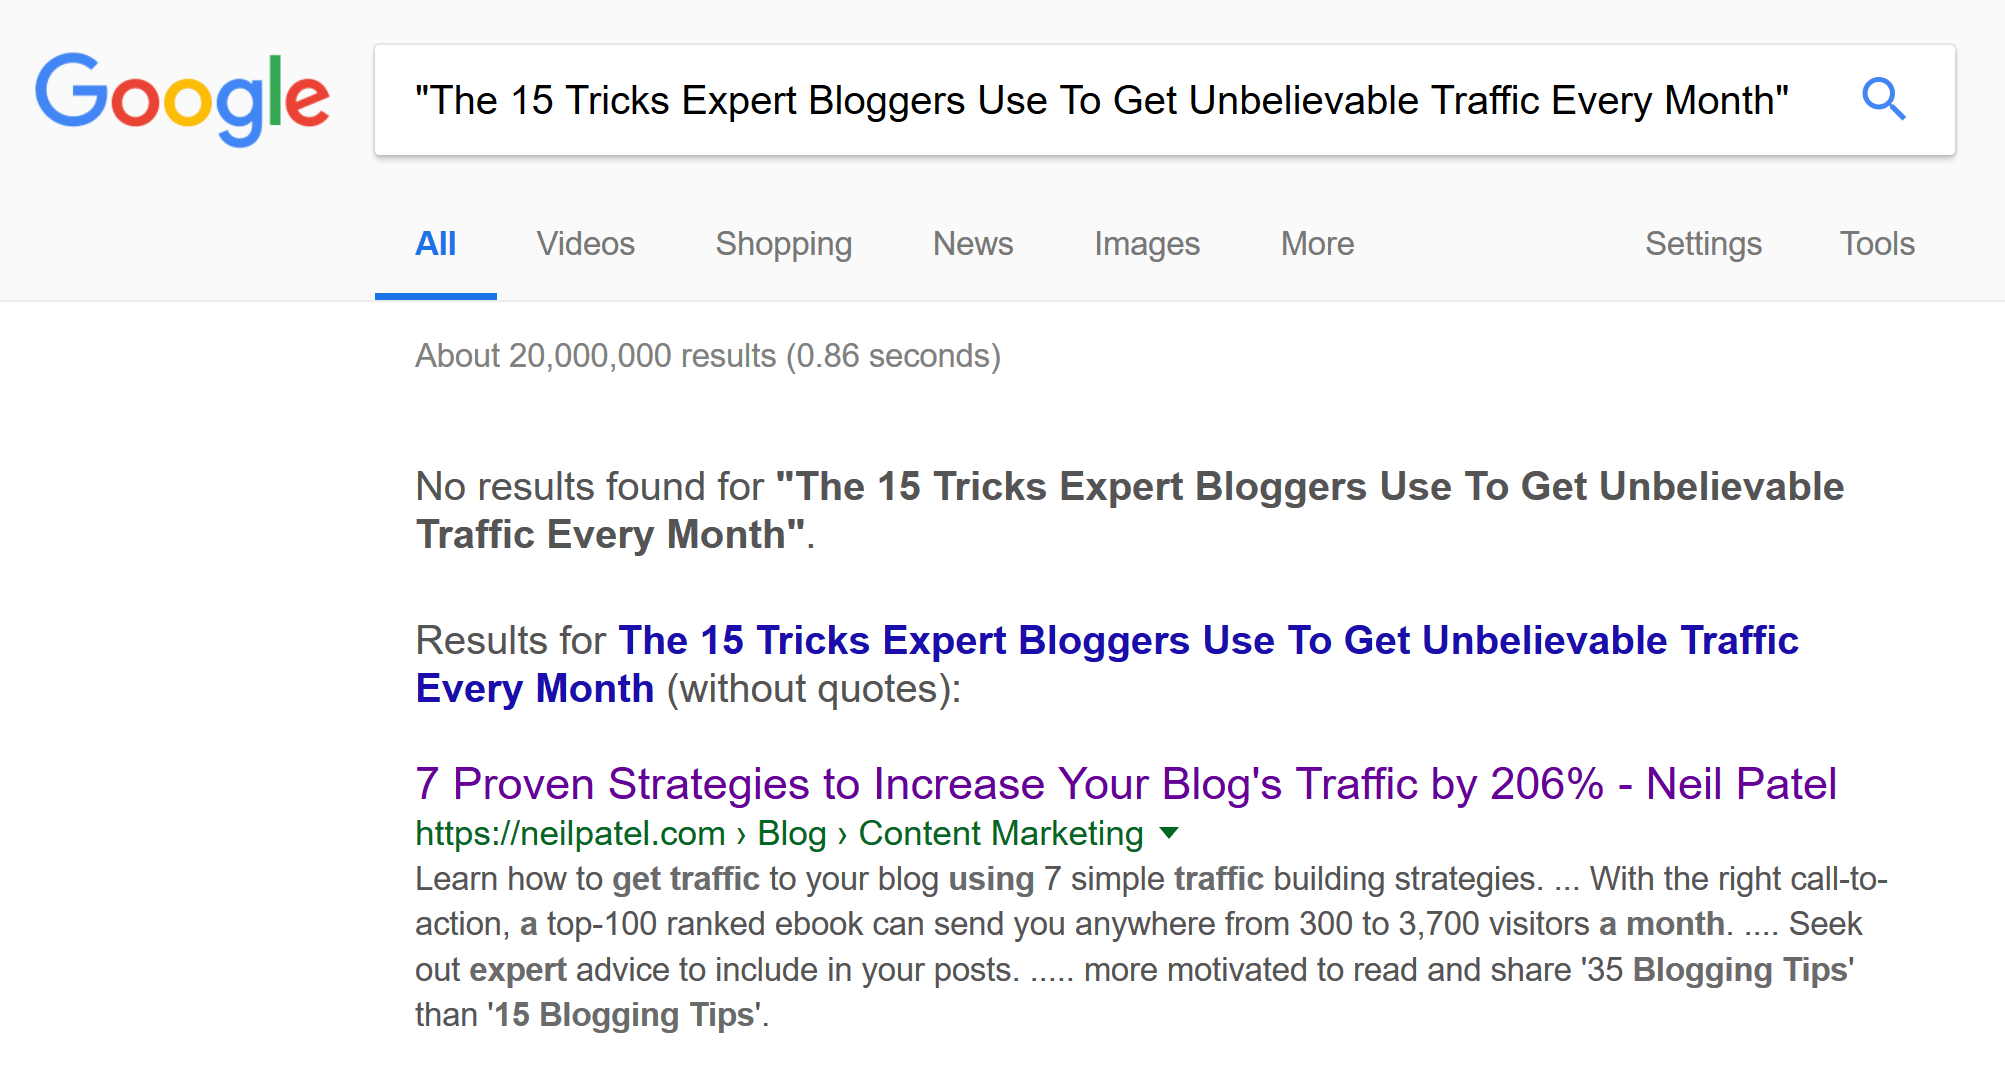 This blog title has no GOogle competition, which means it will likely get a better search ranking.